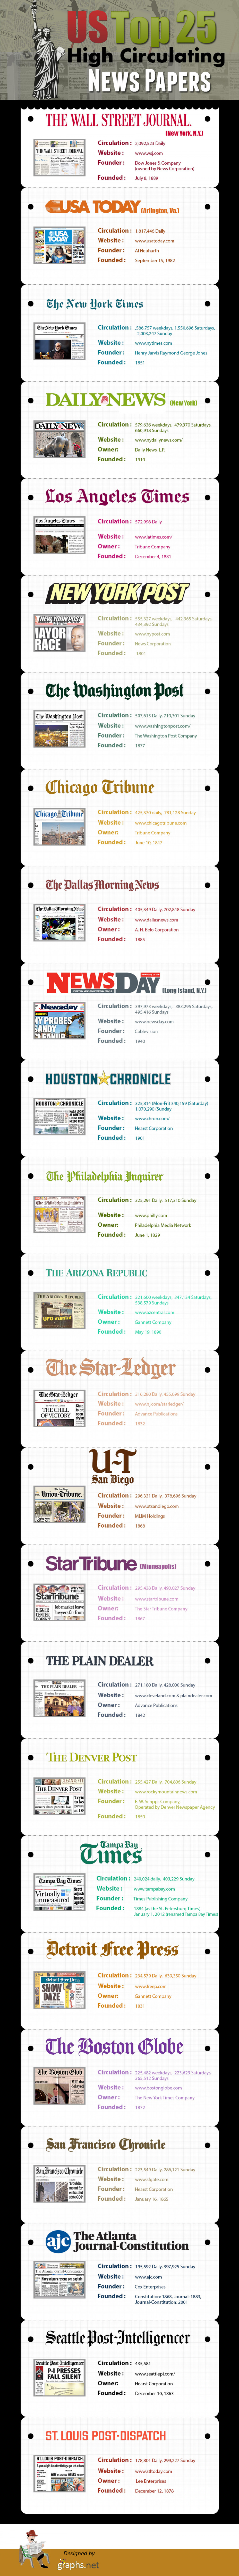 25 most circulating news papers in US Infographic